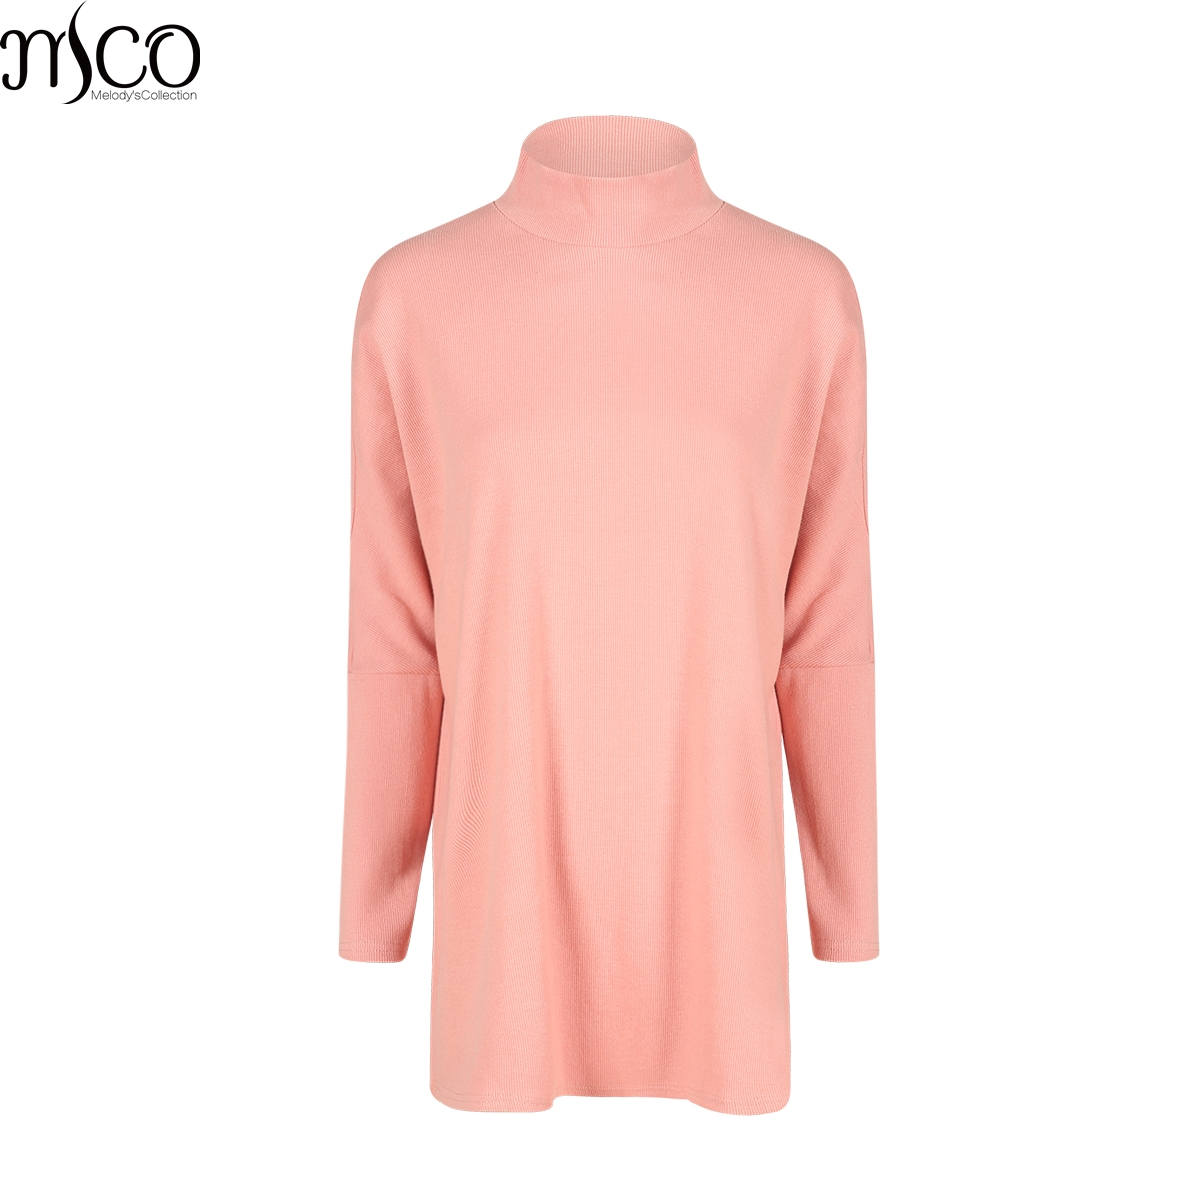 MCO 2017 Winter Turtle Neck Plus Size Knitted Top For Big Women Batwing  Sleeves Oversized Jumper 12dfe399a229